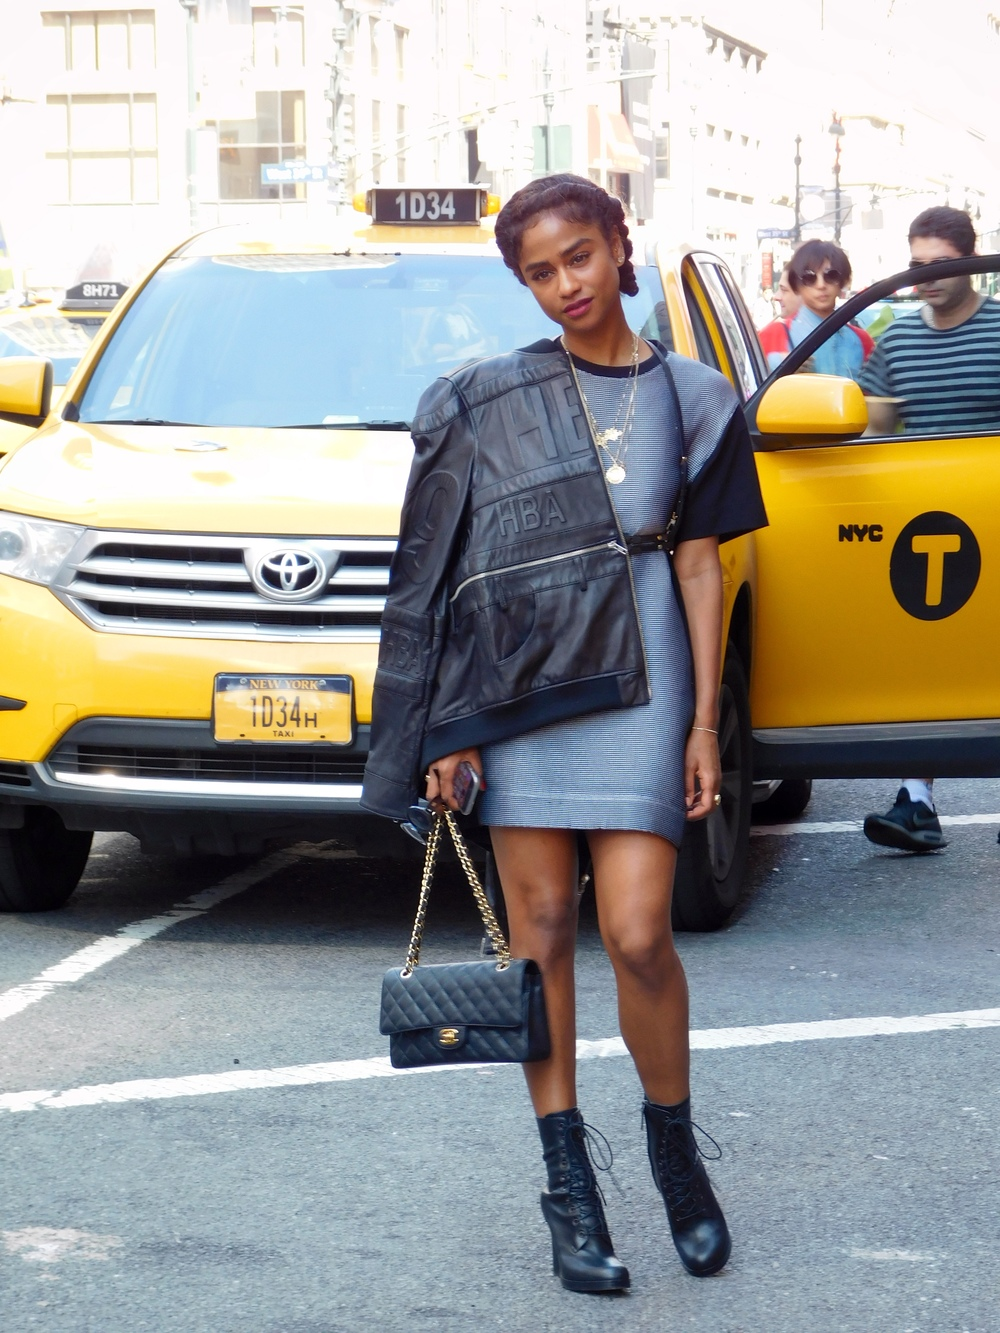 Vashtie Killing it in HBA and with the Chanel purse.